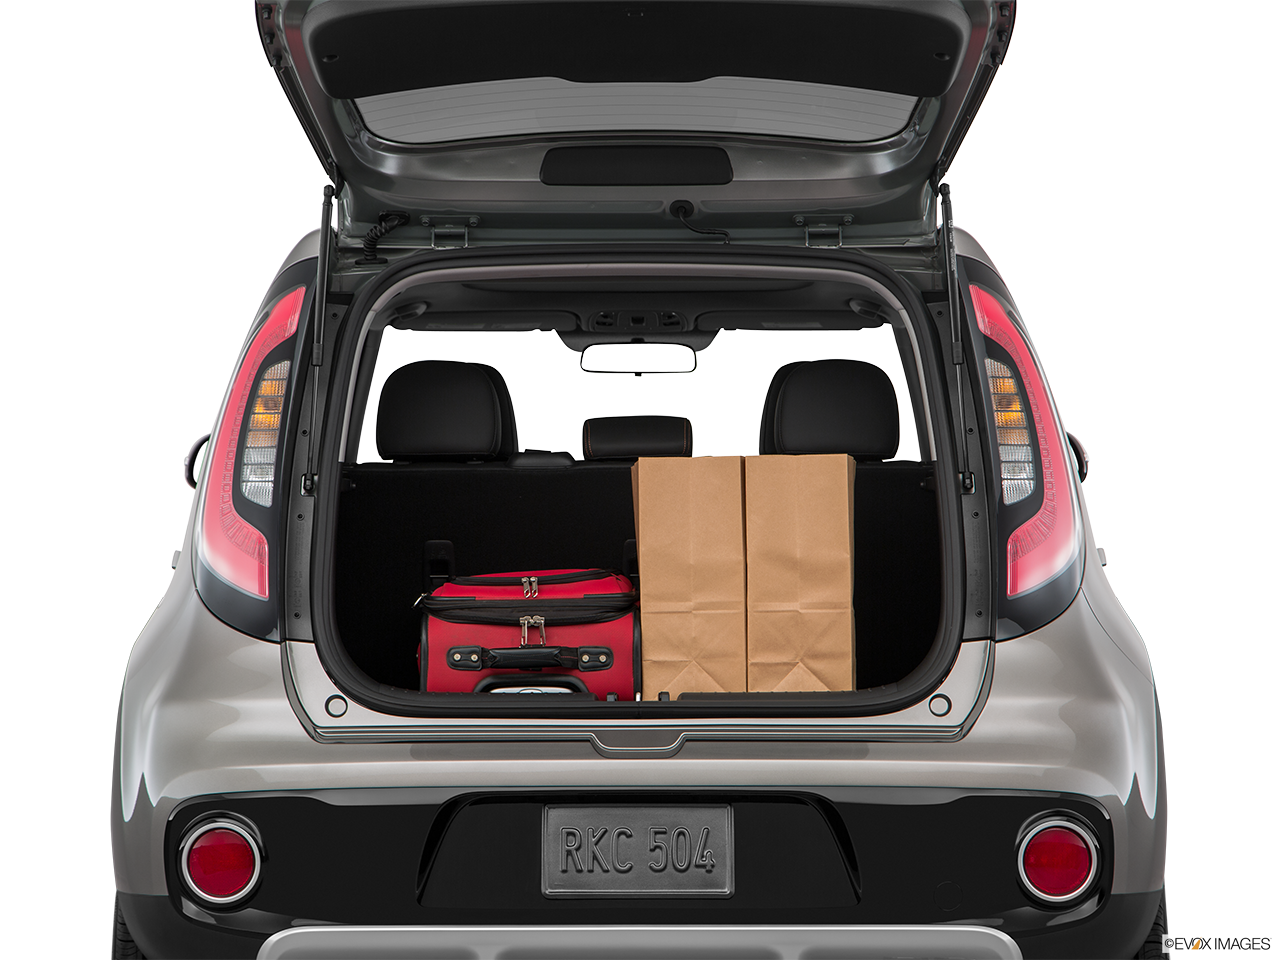 Trunk view of the Kia Soul EV